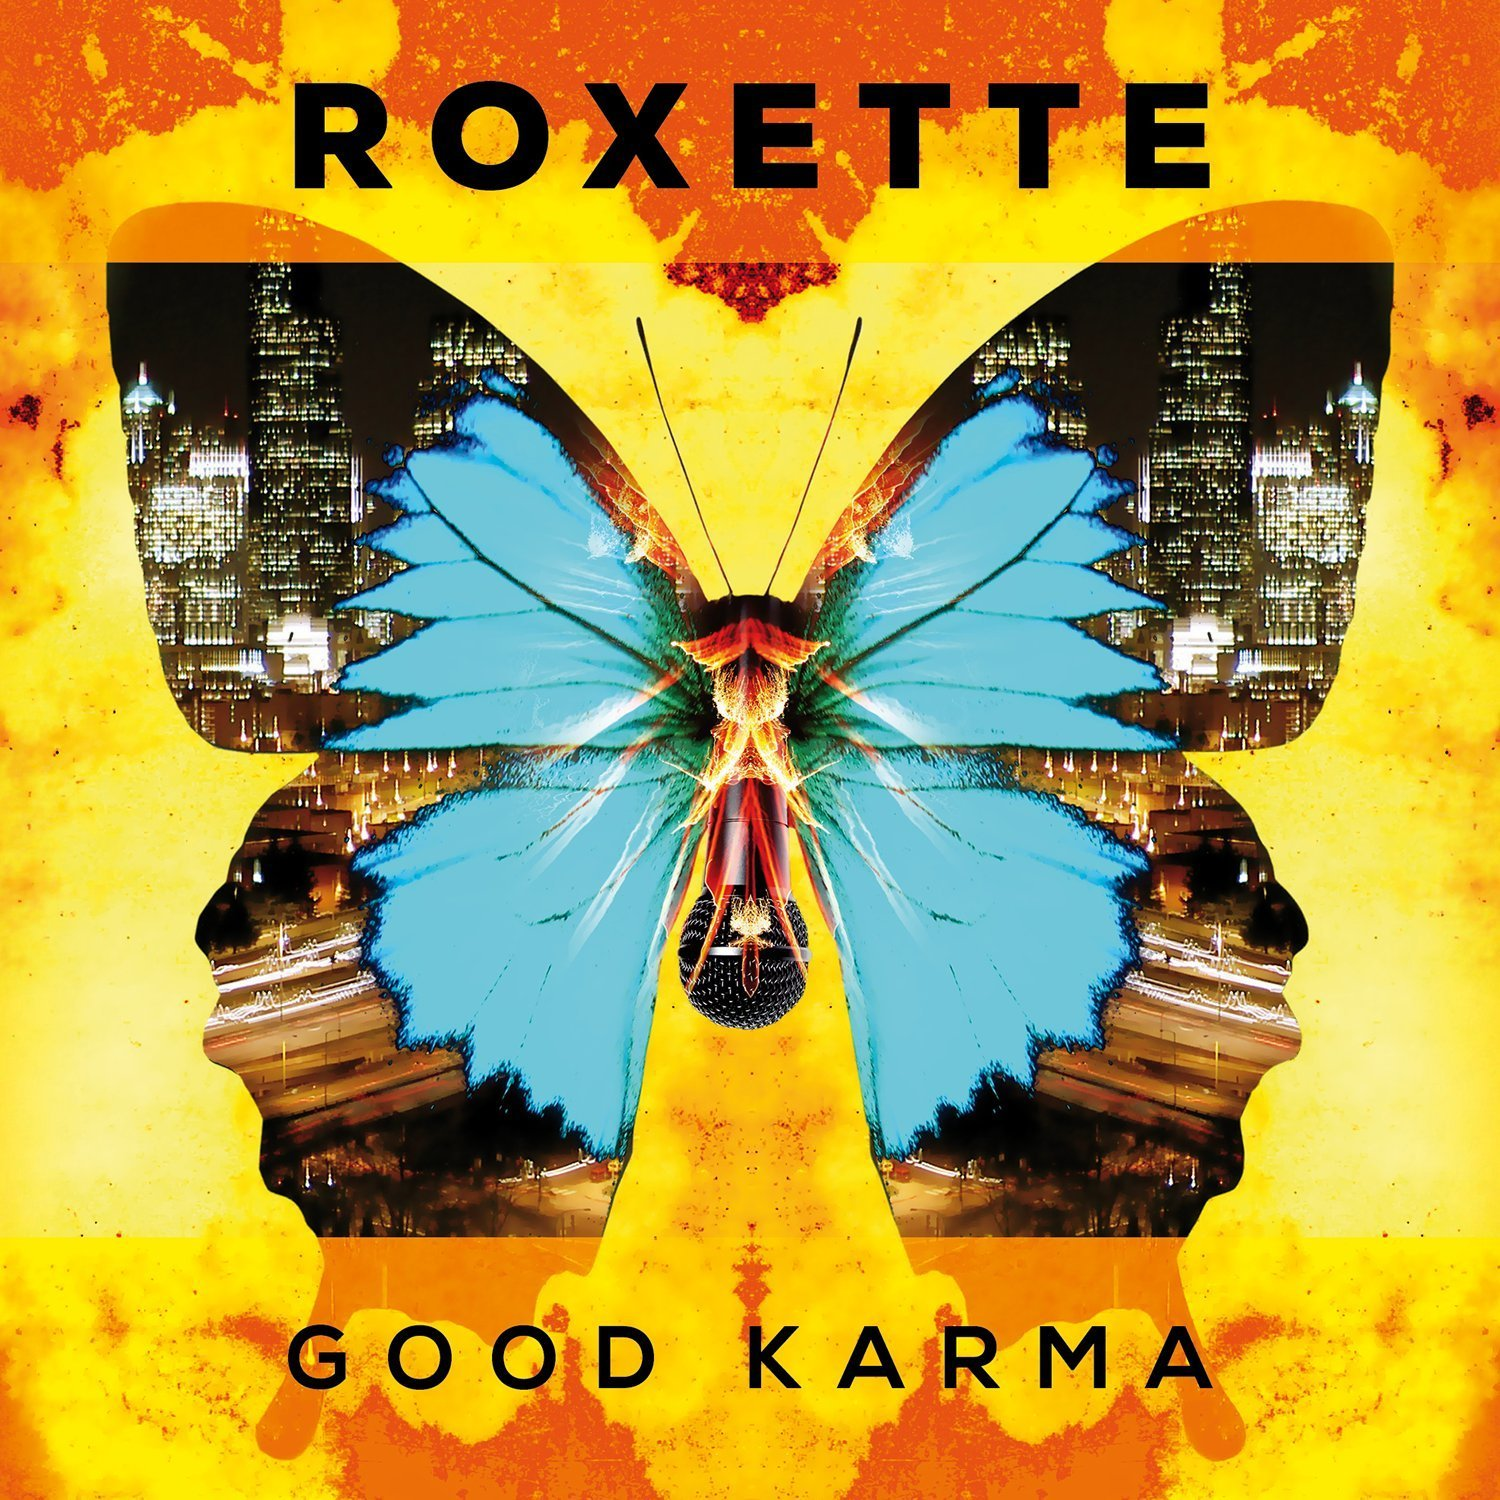 Roxettes turne stalls in